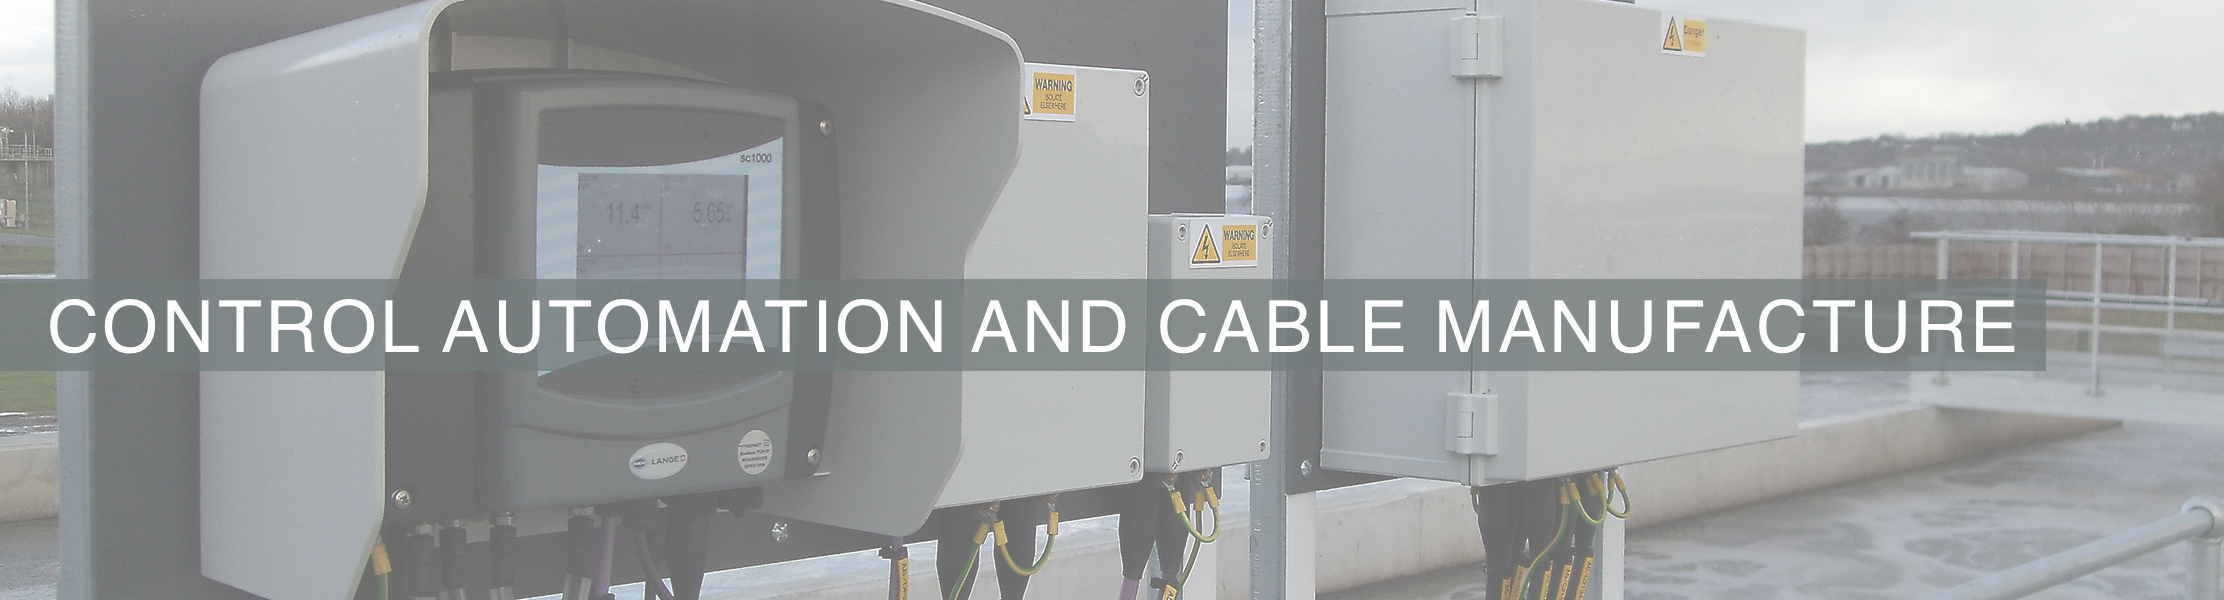 Control Automation And Cable Manufacture Austin Lenika